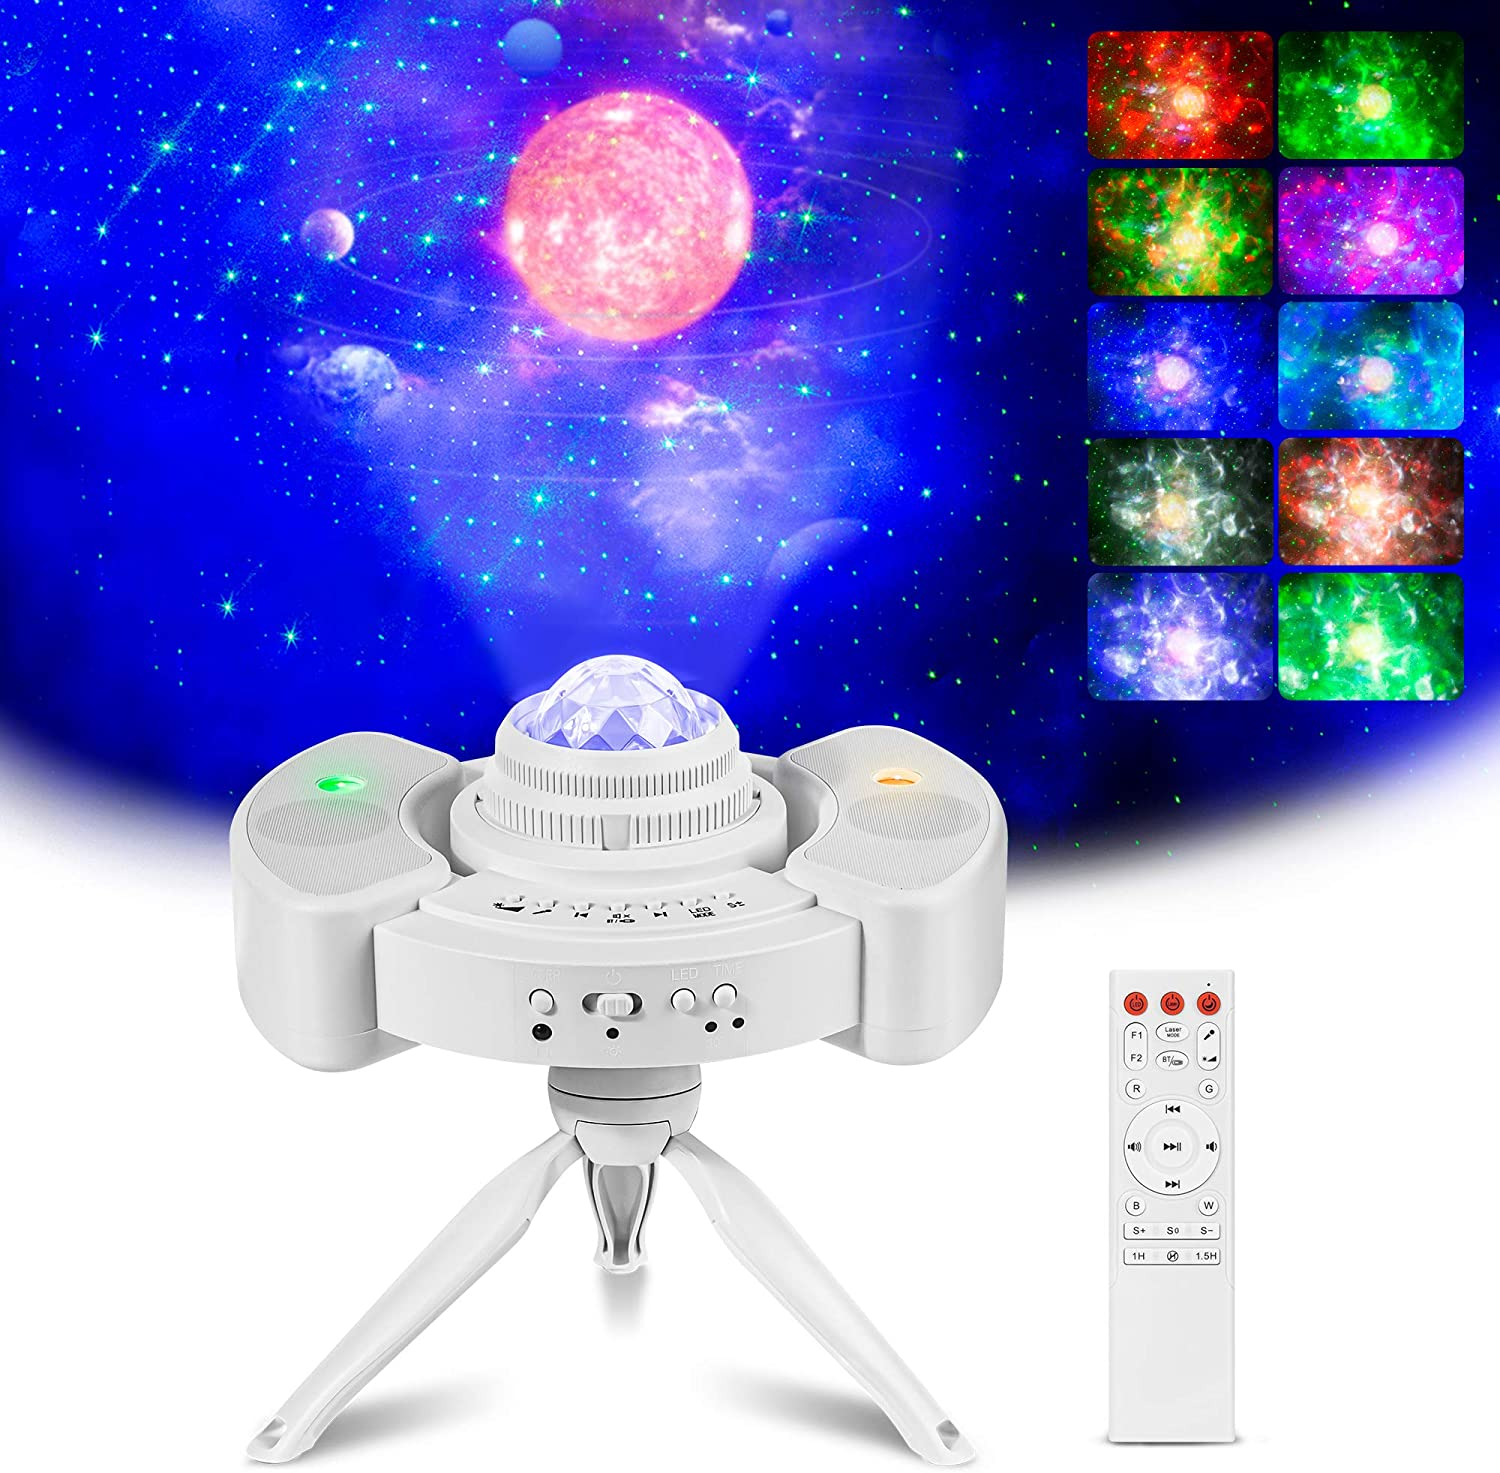 Star Light Projector for Bedroom,TekHome Galaxy Projector,Gifts for Women Men Mom,Starry Night Light Projector for Home Party,Projector Lights for Ceiling for Adults Teen Girls Boys.